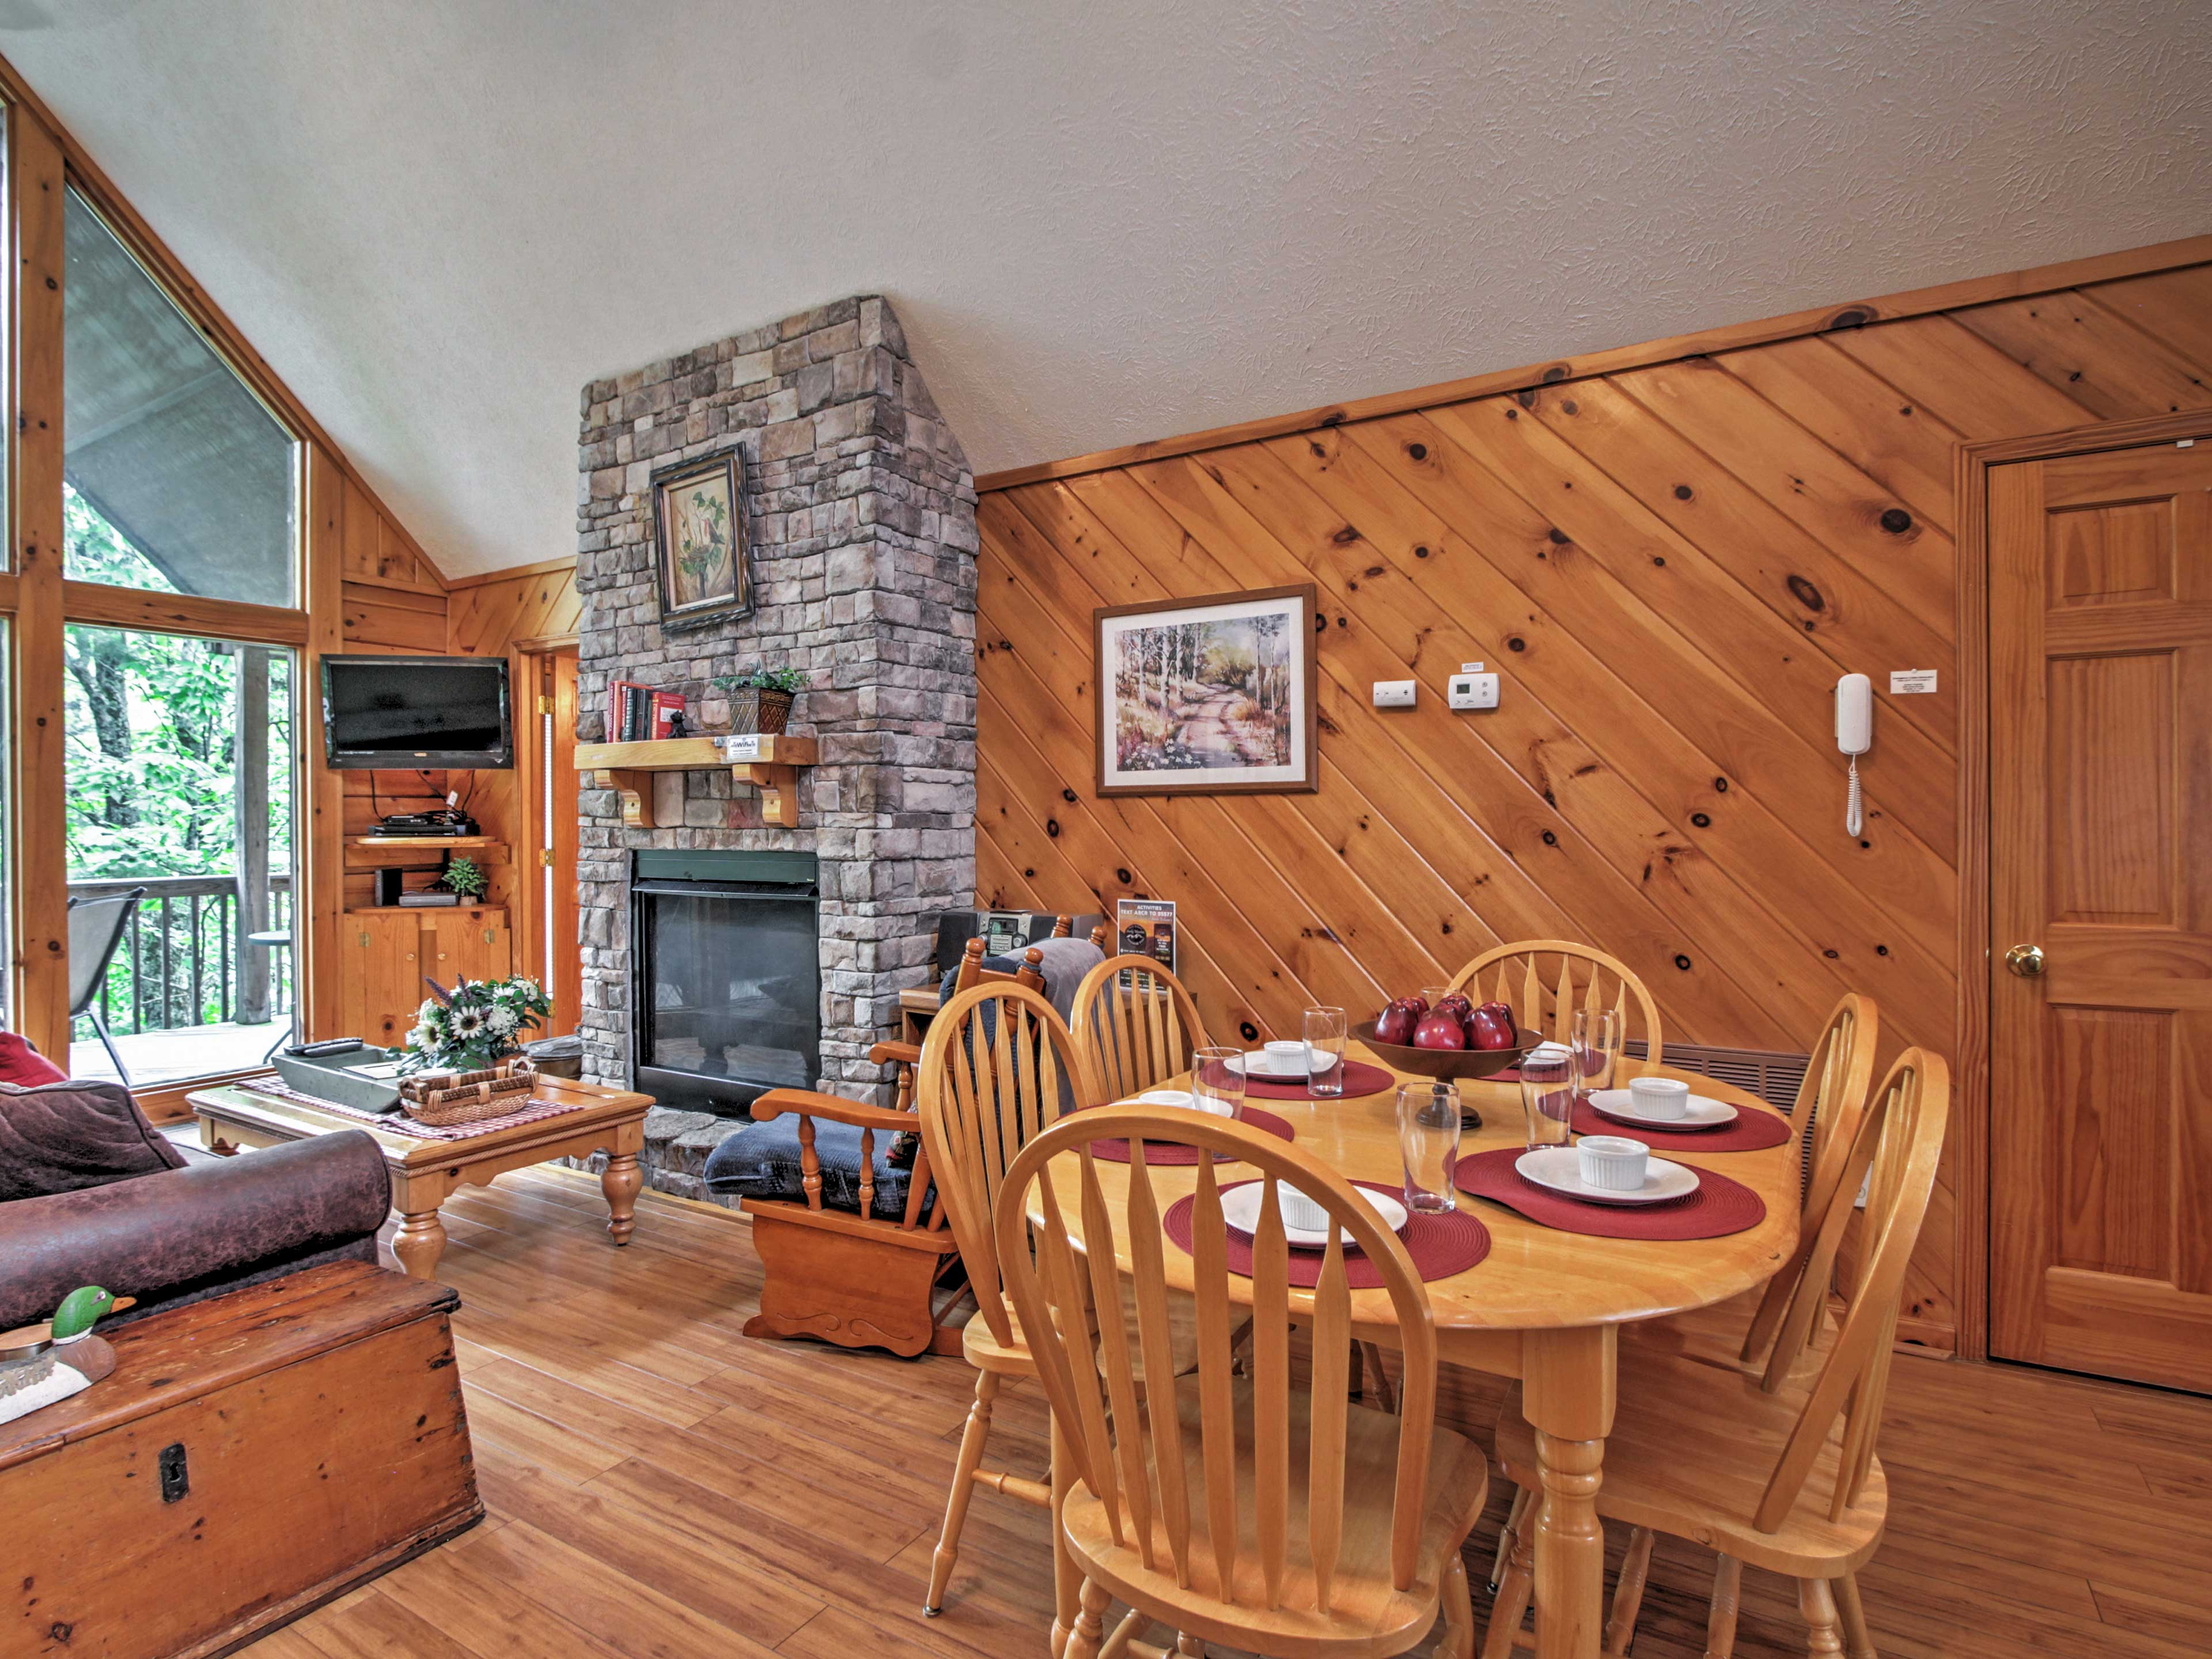 You'll love the charming cabin decor.